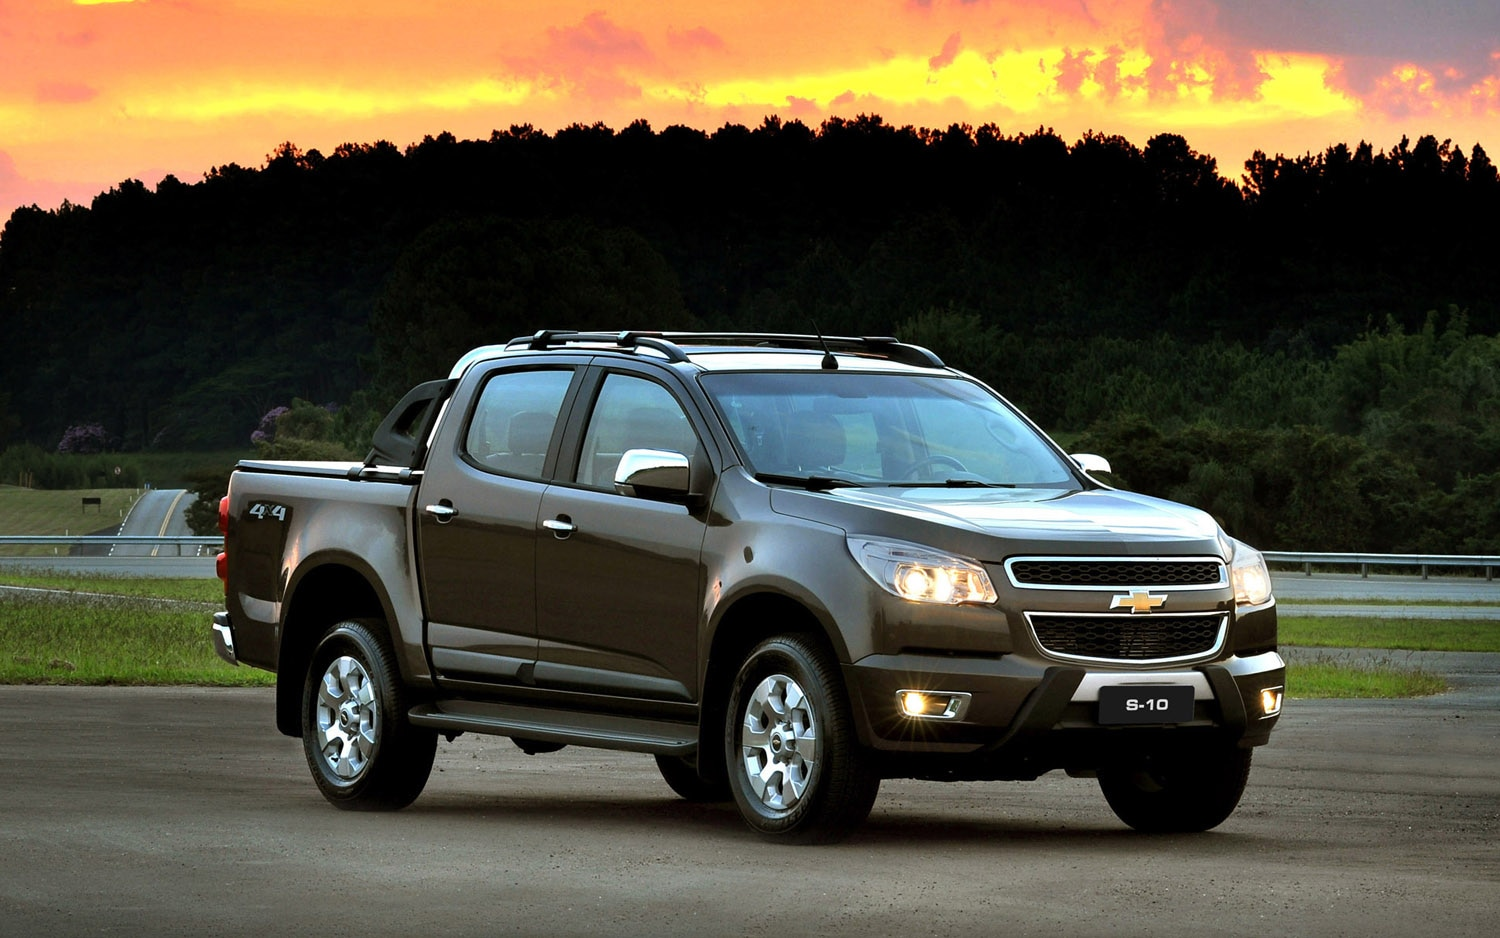 2012 Chevrolet S 10 Front Three Quarter 51